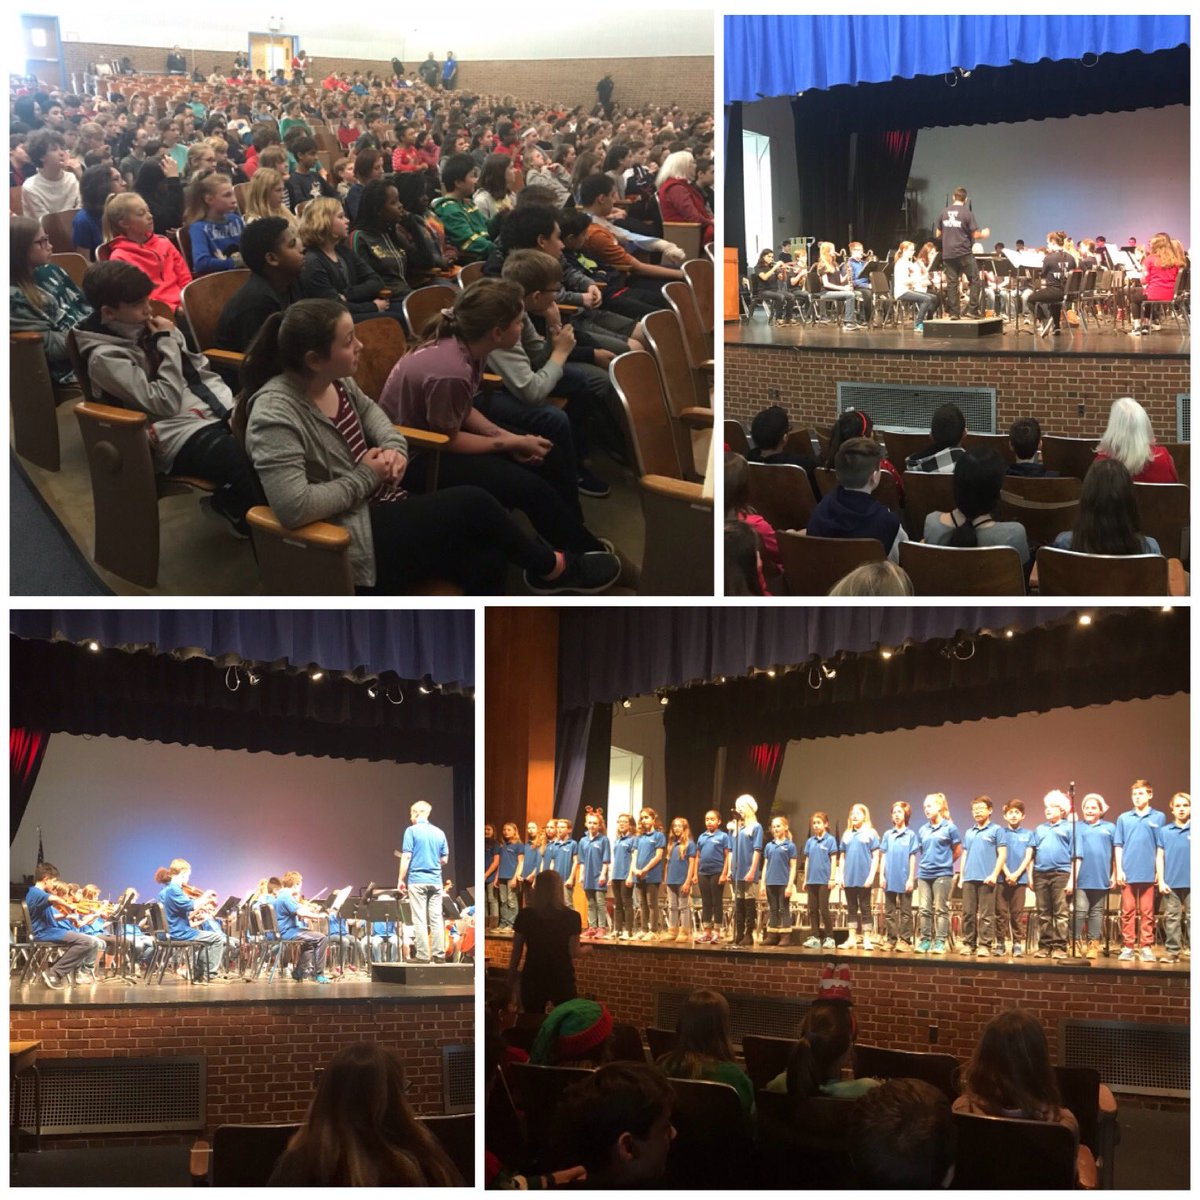 Ringing in the new year with the WMS Winter Concert. Happy Holidays, wolves!! <a target='_blank' href='http://search.twitter.com/search?q=APSisAwesome'><a target='_blank' href='https://twitter.com/hashtag/APSisAwesome?src=hash'>#APSisAwesome</a></a> <a target='_blank' href='http://search.twitter.com/search?q=WeCan'><a target='_blank' href='https://twitter.com/hashtag/WeCan?src=hash'>#WeCan</a></a> <a target='_blank' href='http://search.twitter.com/search?q=WMSwolf'><a target='_blank' href='https://twitter.com/hashtag/WMSwolf?src=hash'>#WMSwolf</a></a> <a target='_blank' href='https://t.co/EJcgMZybQB'>https://t.co/EJcgMZybQB</a>